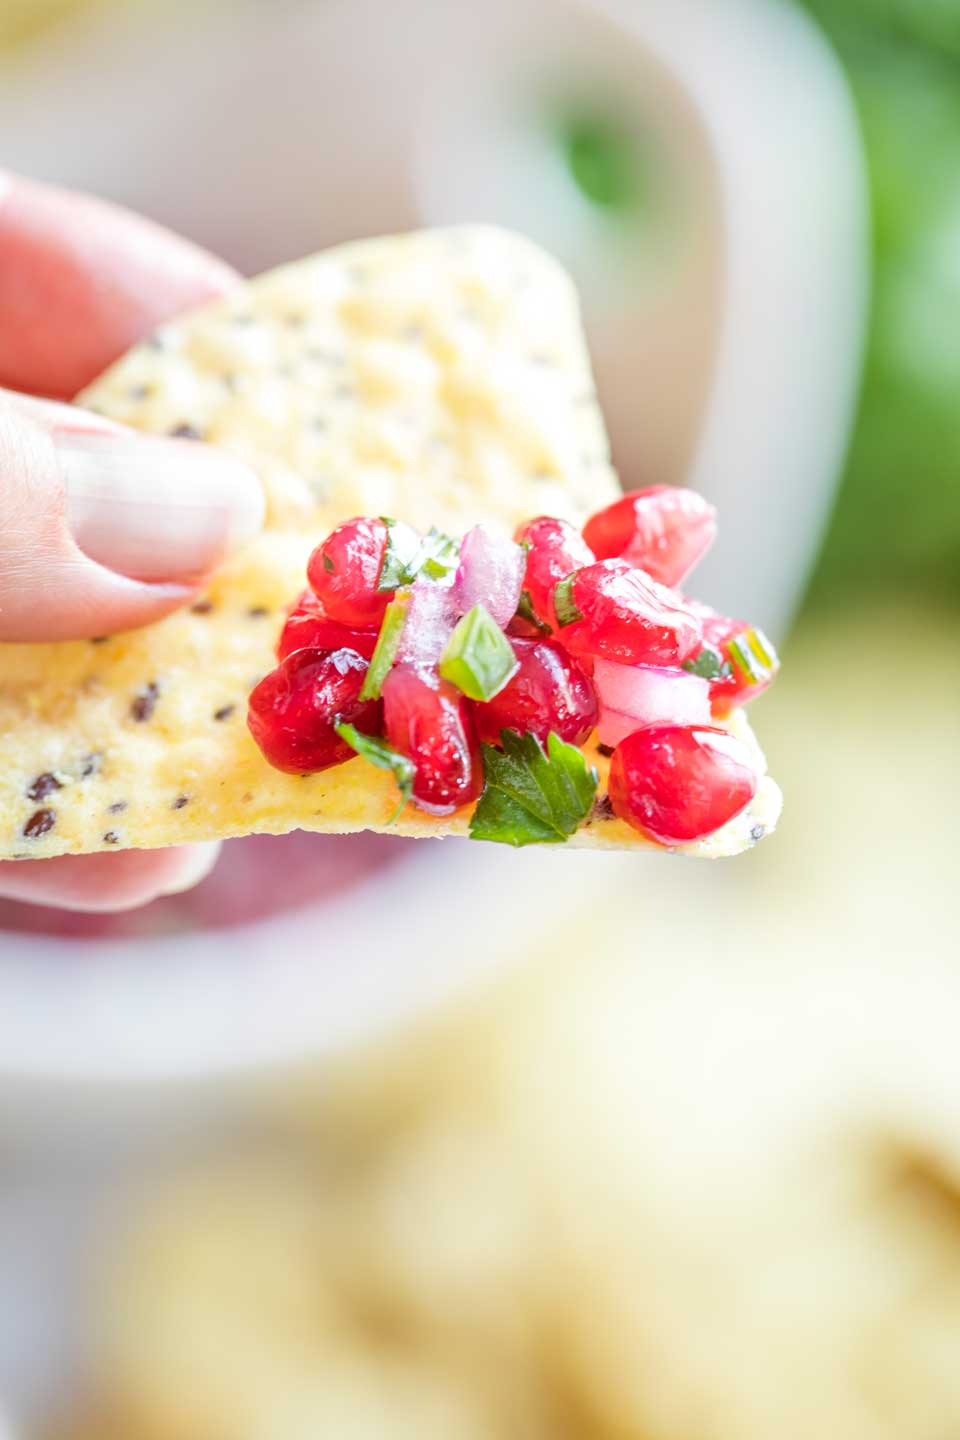 Closeup of fingers holding a tortilla chip with some of the Pomegranate Salsa piled on its tip - the serving bowl and other tortilla chips are blurred out in the background.